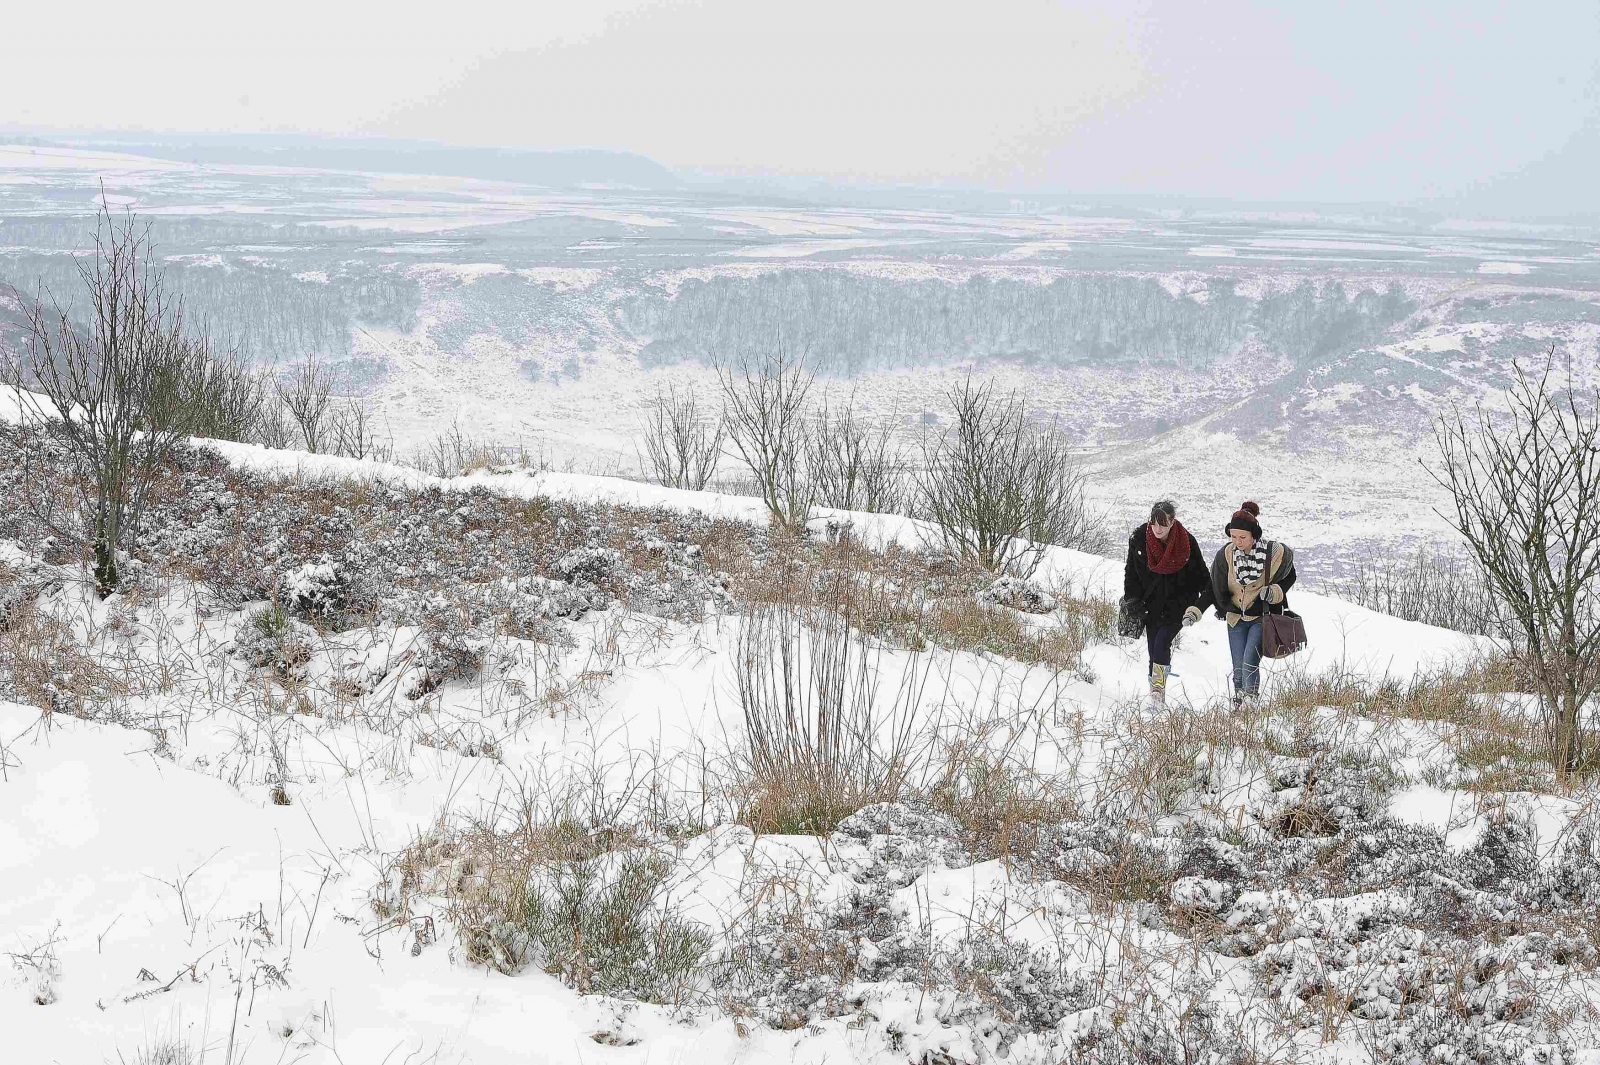 Snow-covered North York Moors near Pickering, northern England